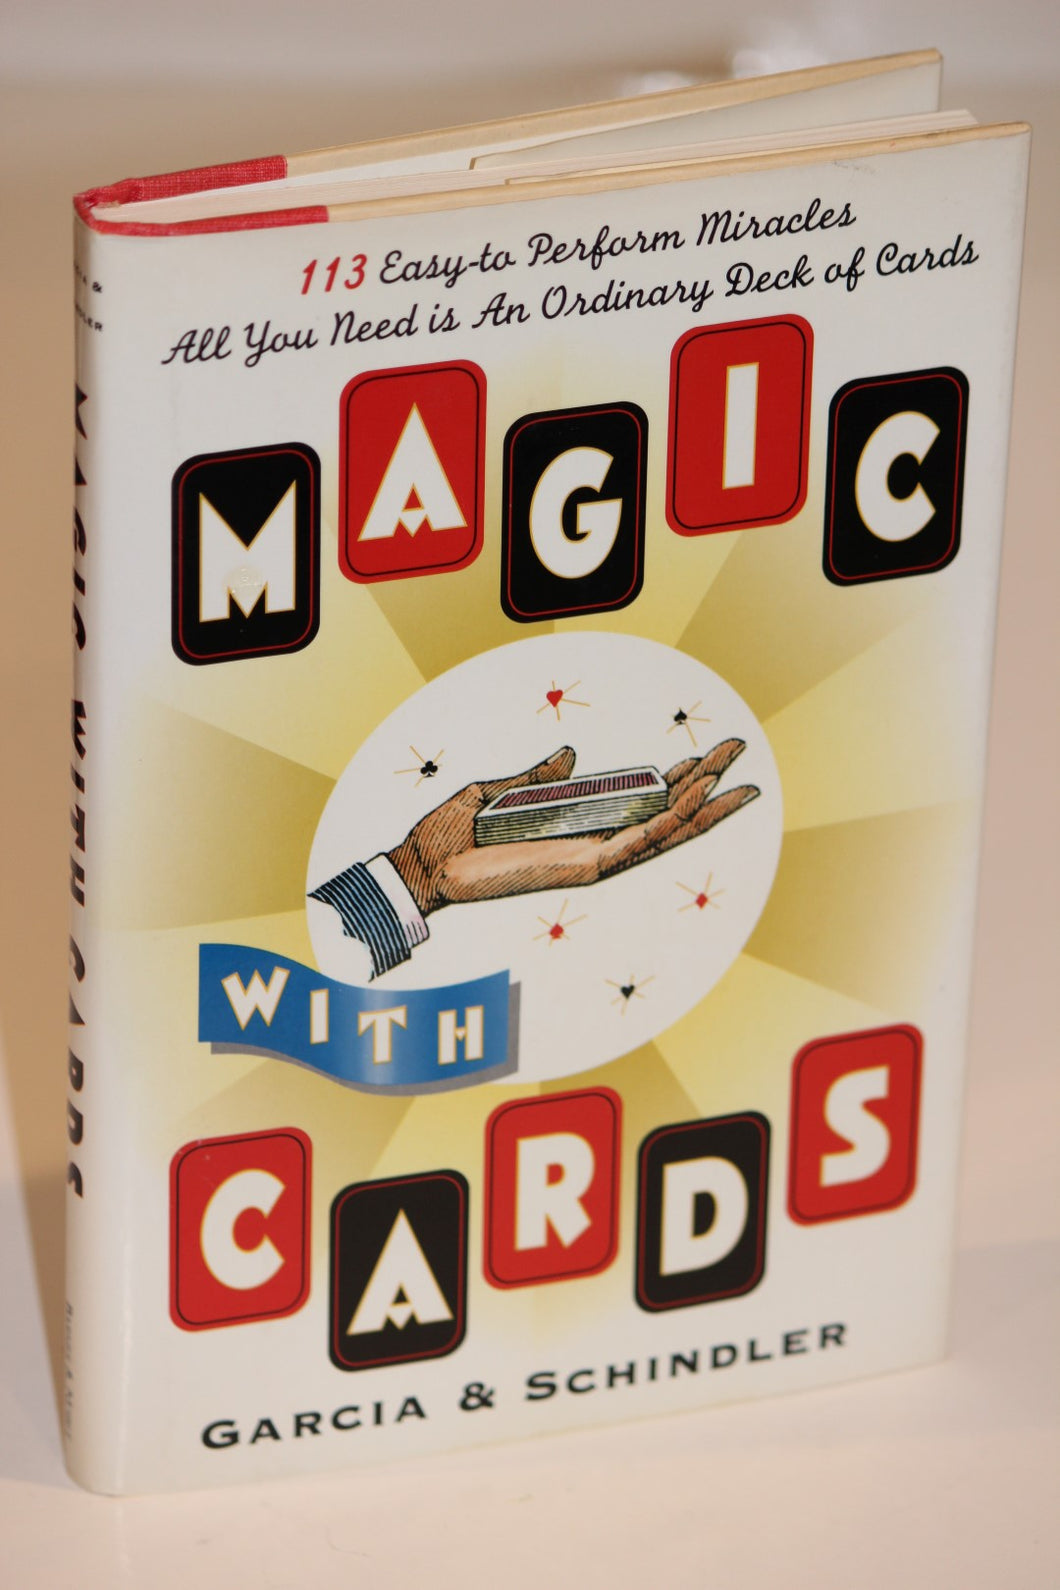 Magic with Cards  -  Garcia & Schindler